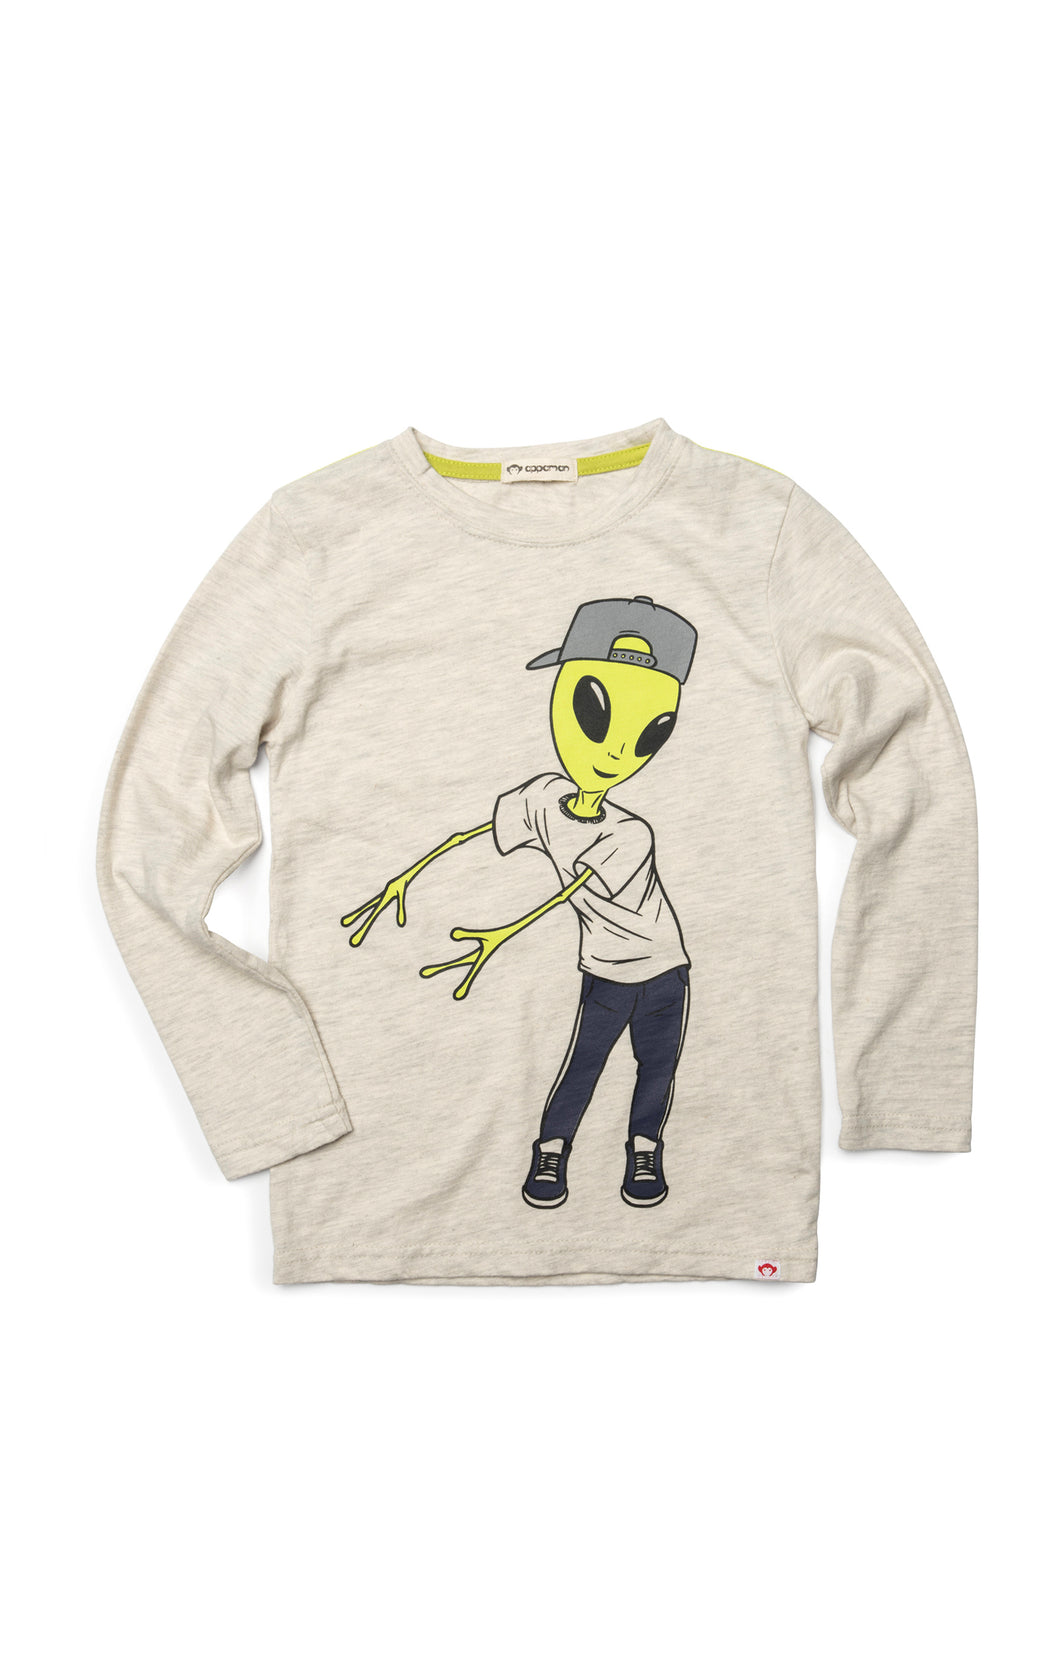 Long sleeve shirt with green alien flossing